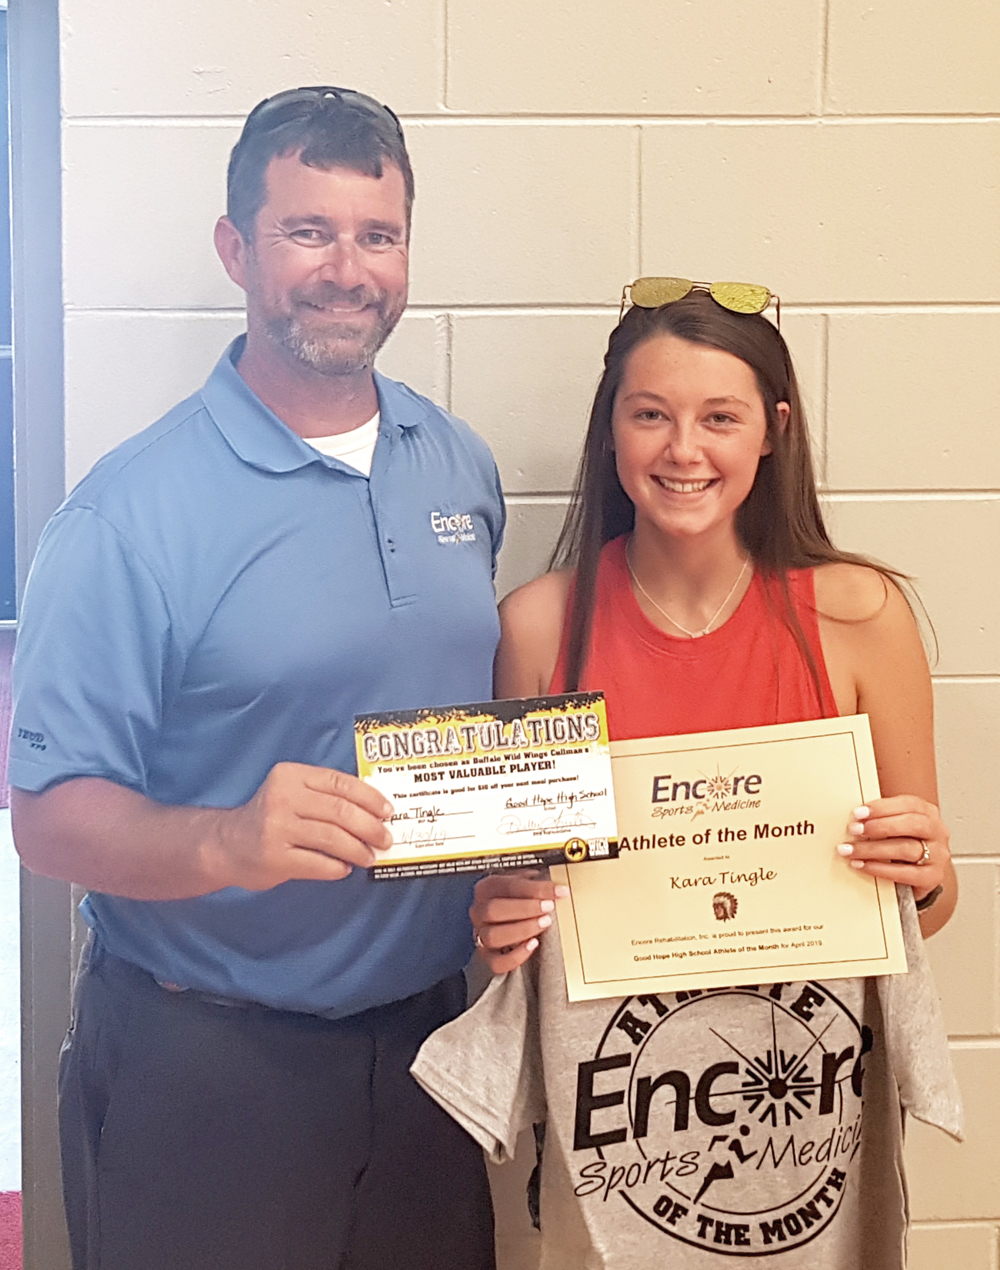 Kara Tingle, multi-sport athlete, is Athlete of the Month for Good Hope High School and Encore Rehabilitation-Culllman. She is pictured here with Encore Sports Medicine Athletic Trainer Bo Shirey. #EncoreRehab